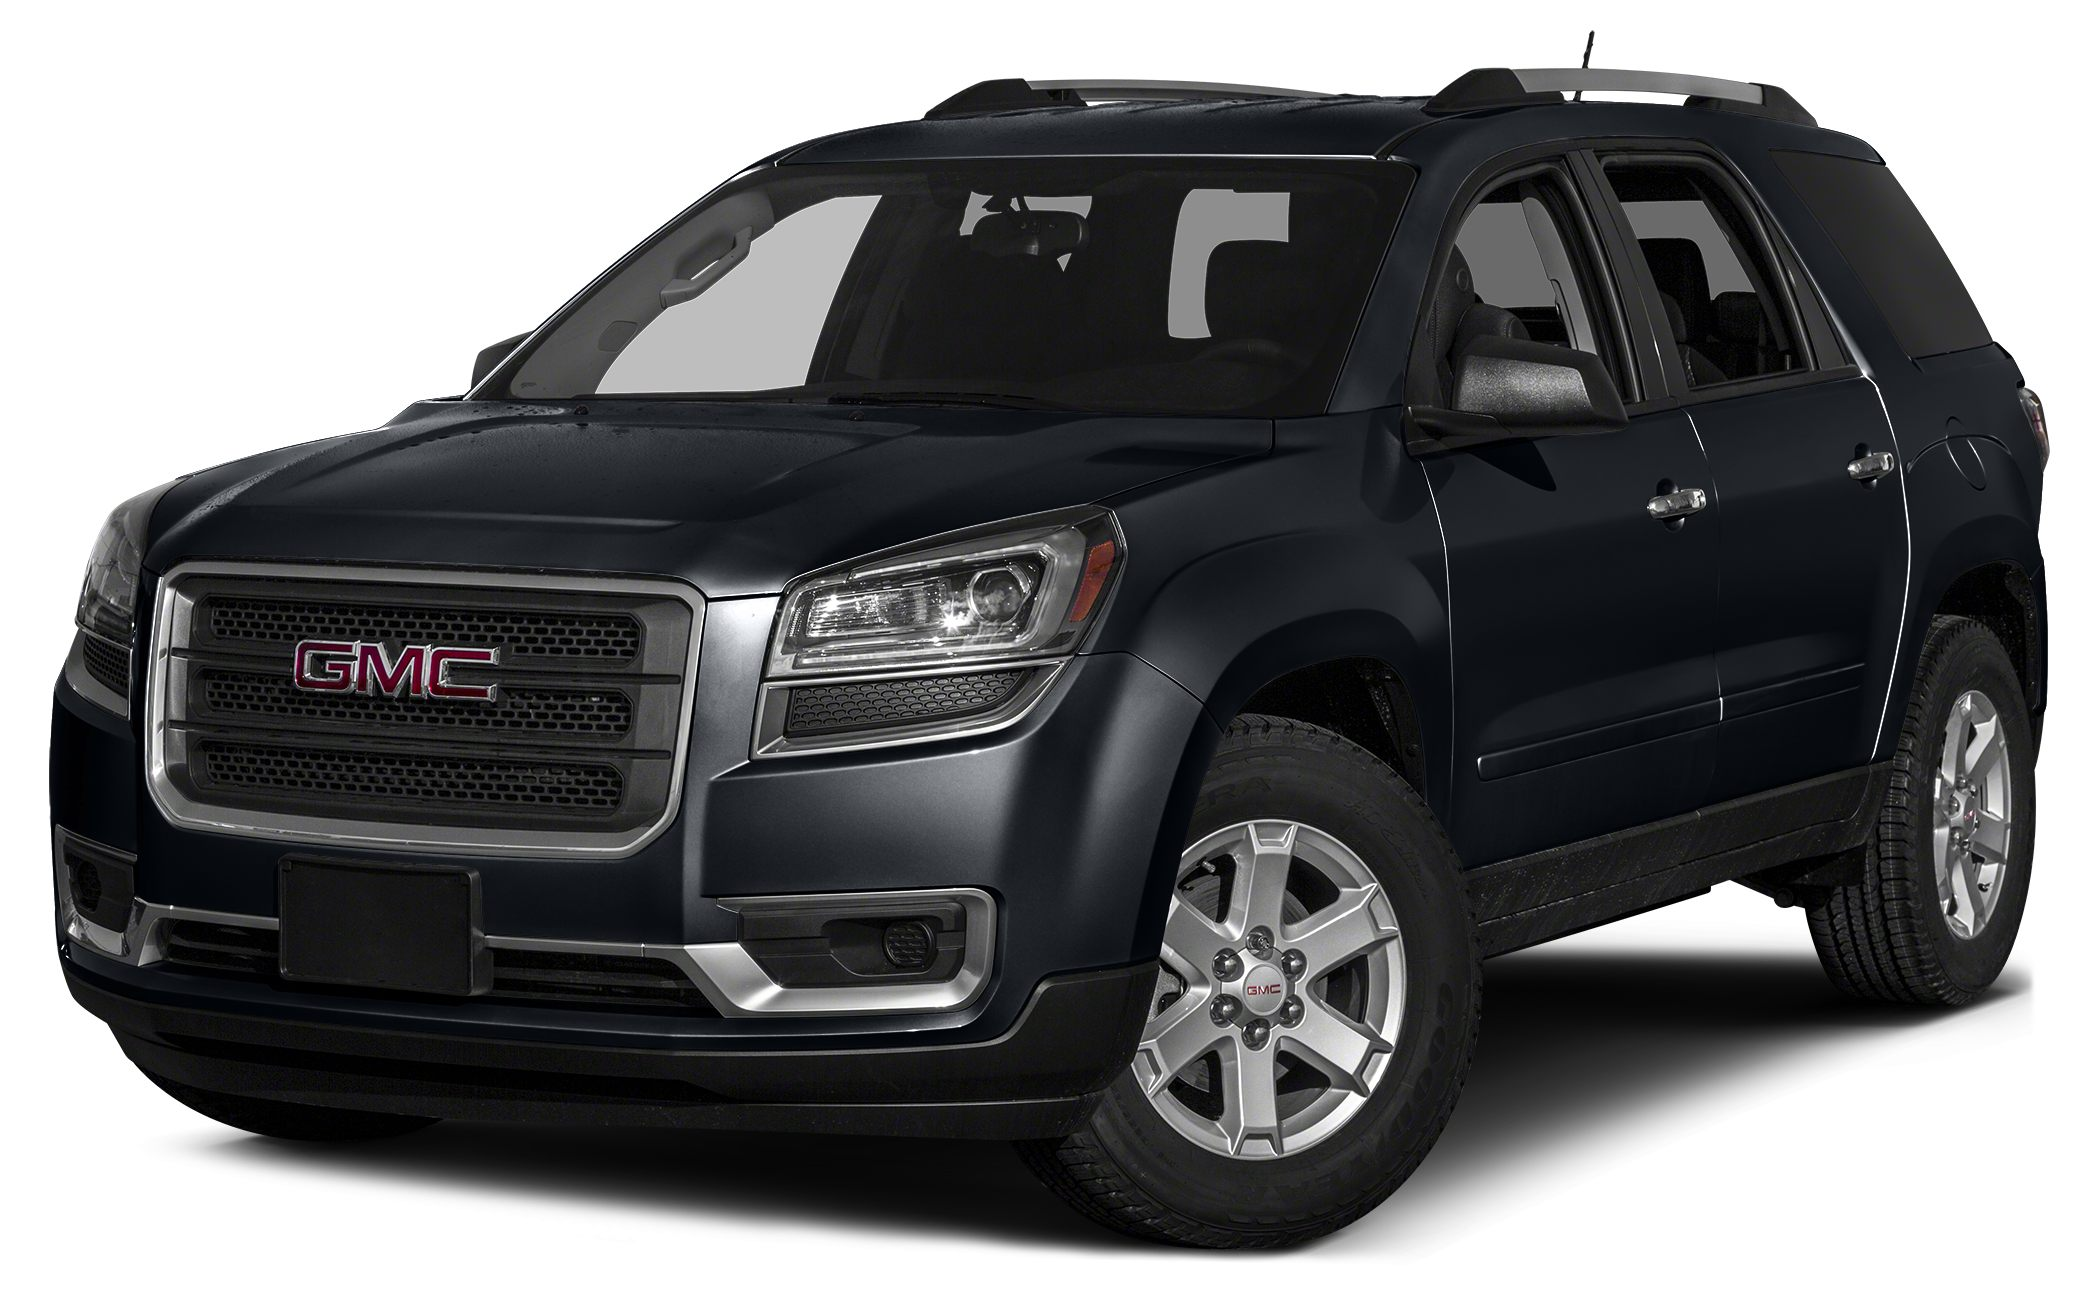 2014 GMC Acadia SLT-1 2014 GMC Acadia SLT-1 in Cyber Gray Metallic Bluetooth for Phone and Audio